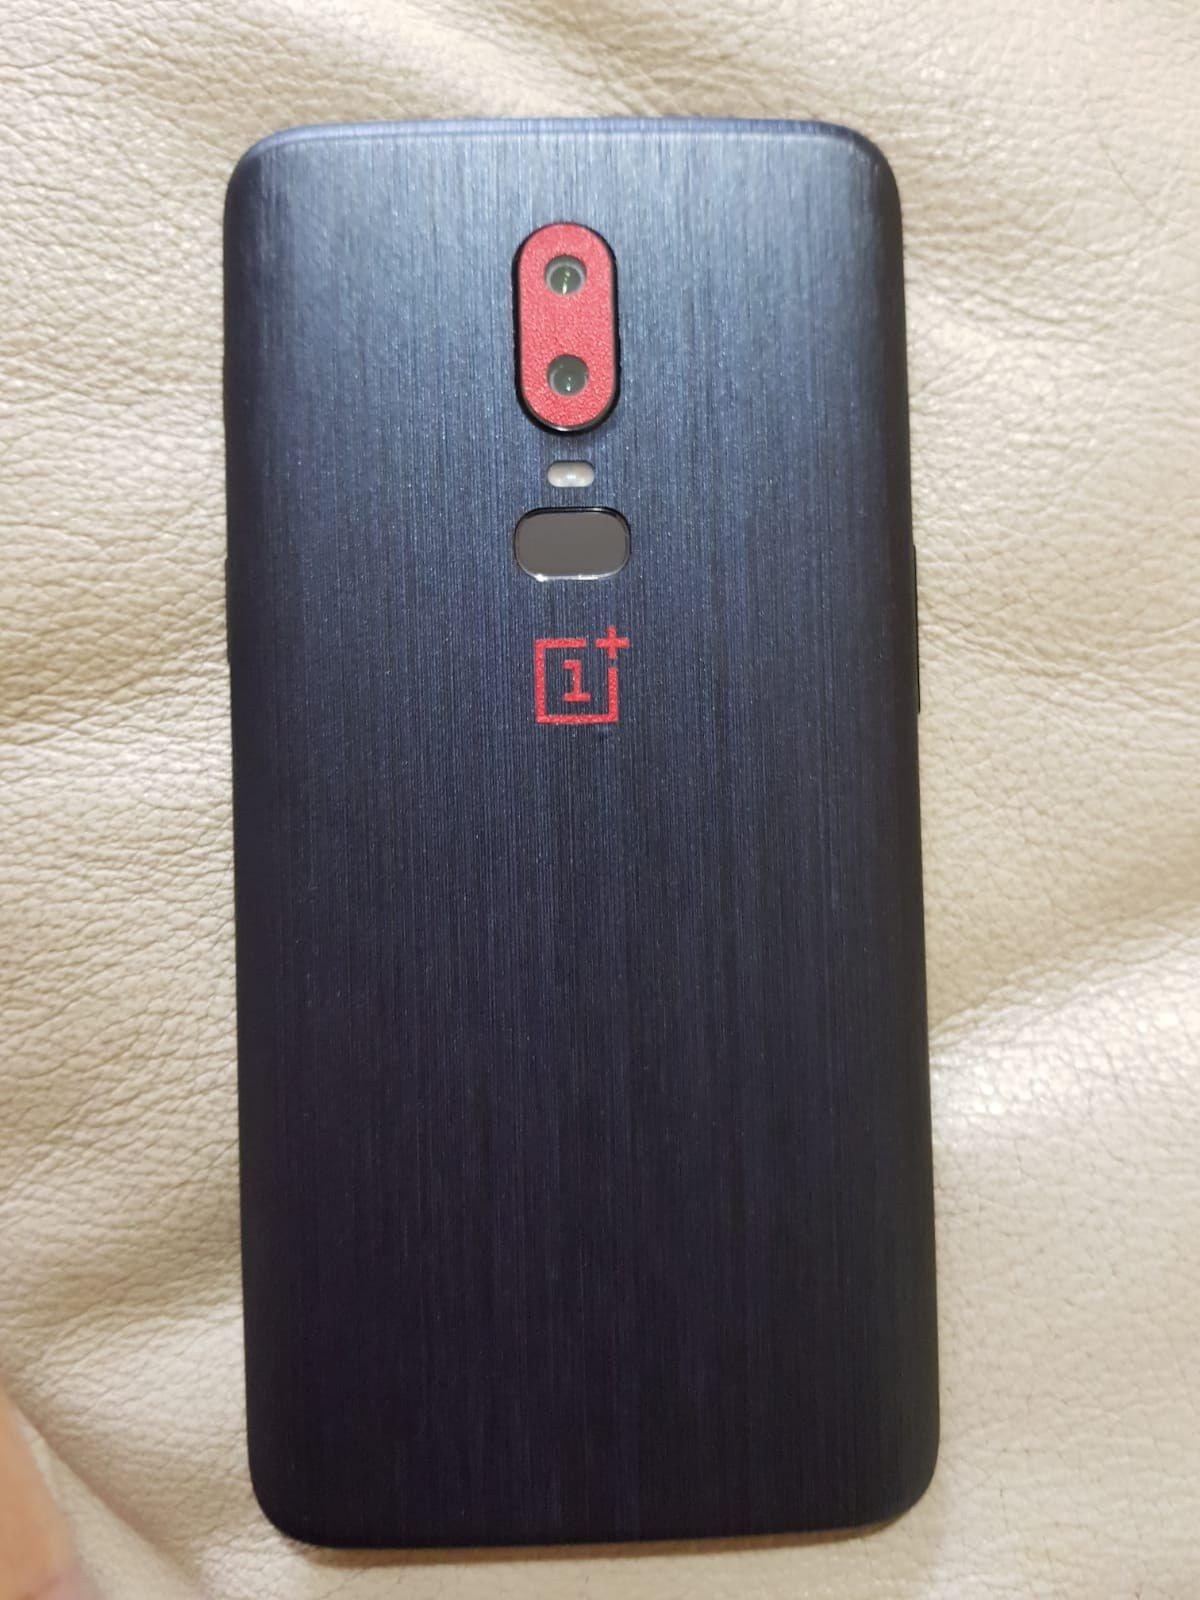 new concept 9d842 ba966 Oneplus 6 - Skins thread - OnePlus Community